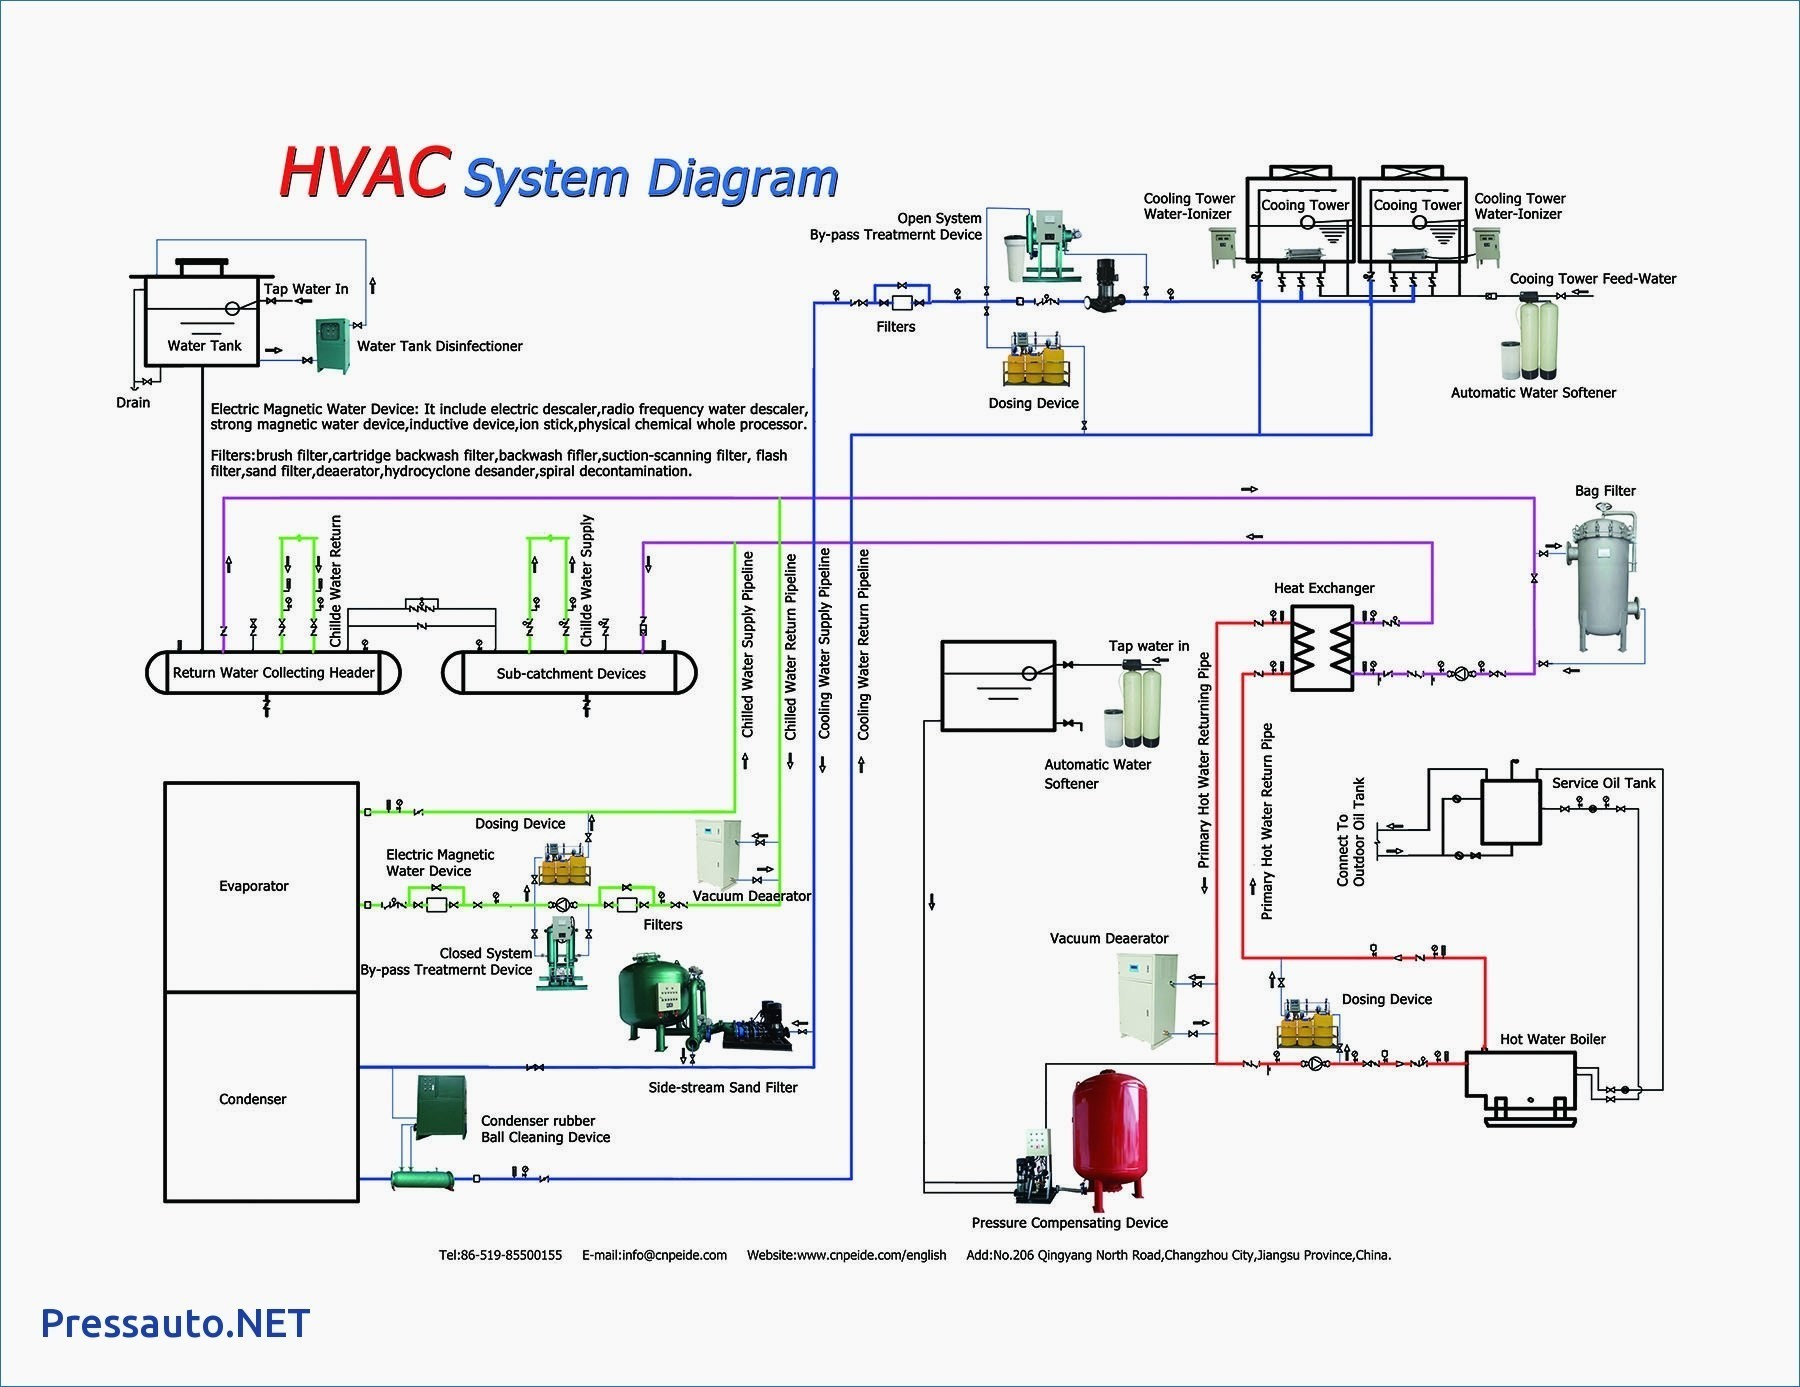 fasco motors wiring diagram Collection-Hvac Fan Wiring Diagram New Wiring Diagram for Fasco Blower Motor Best Hvac Blower Motor Wiring 11-r